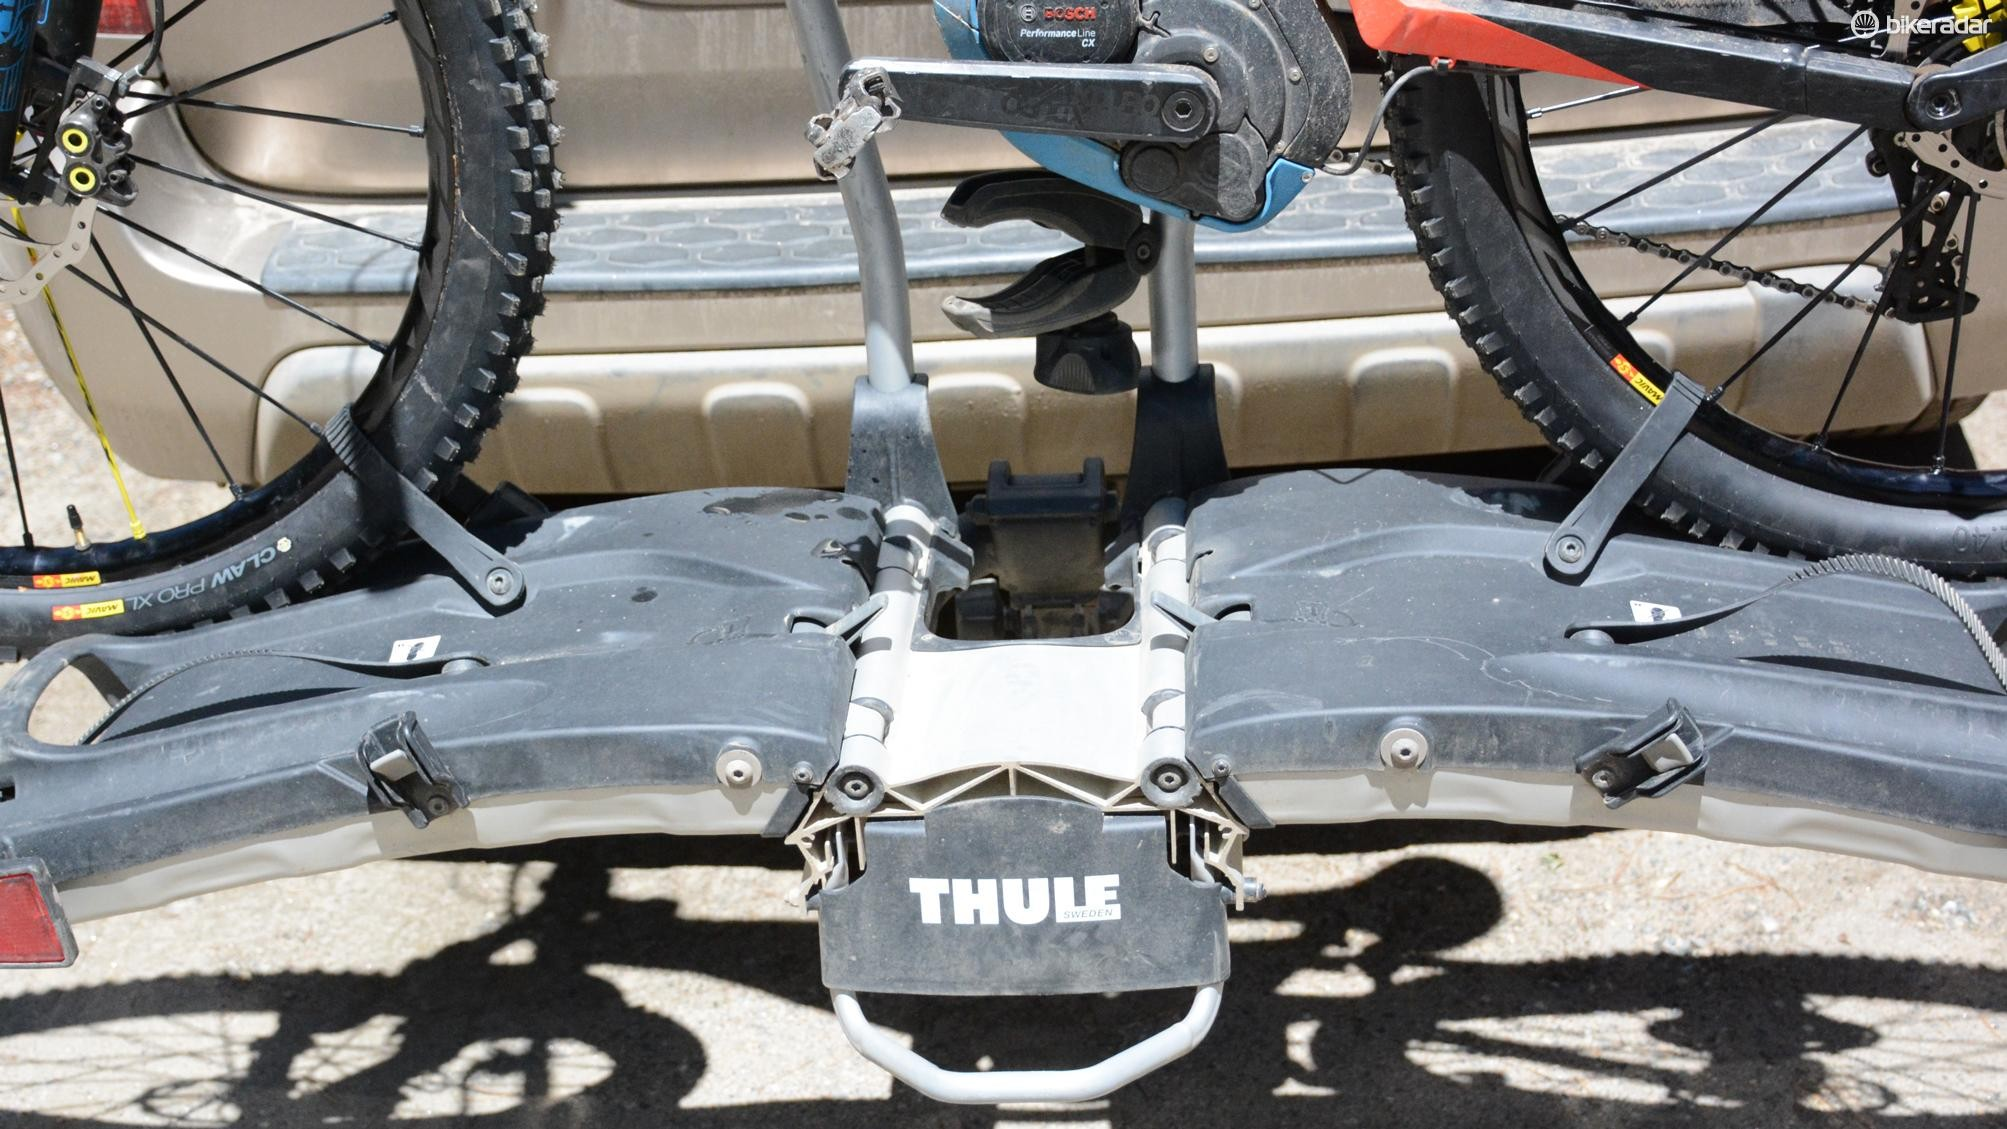 The wheel straps are set too narrow and aren't fat bike compatible